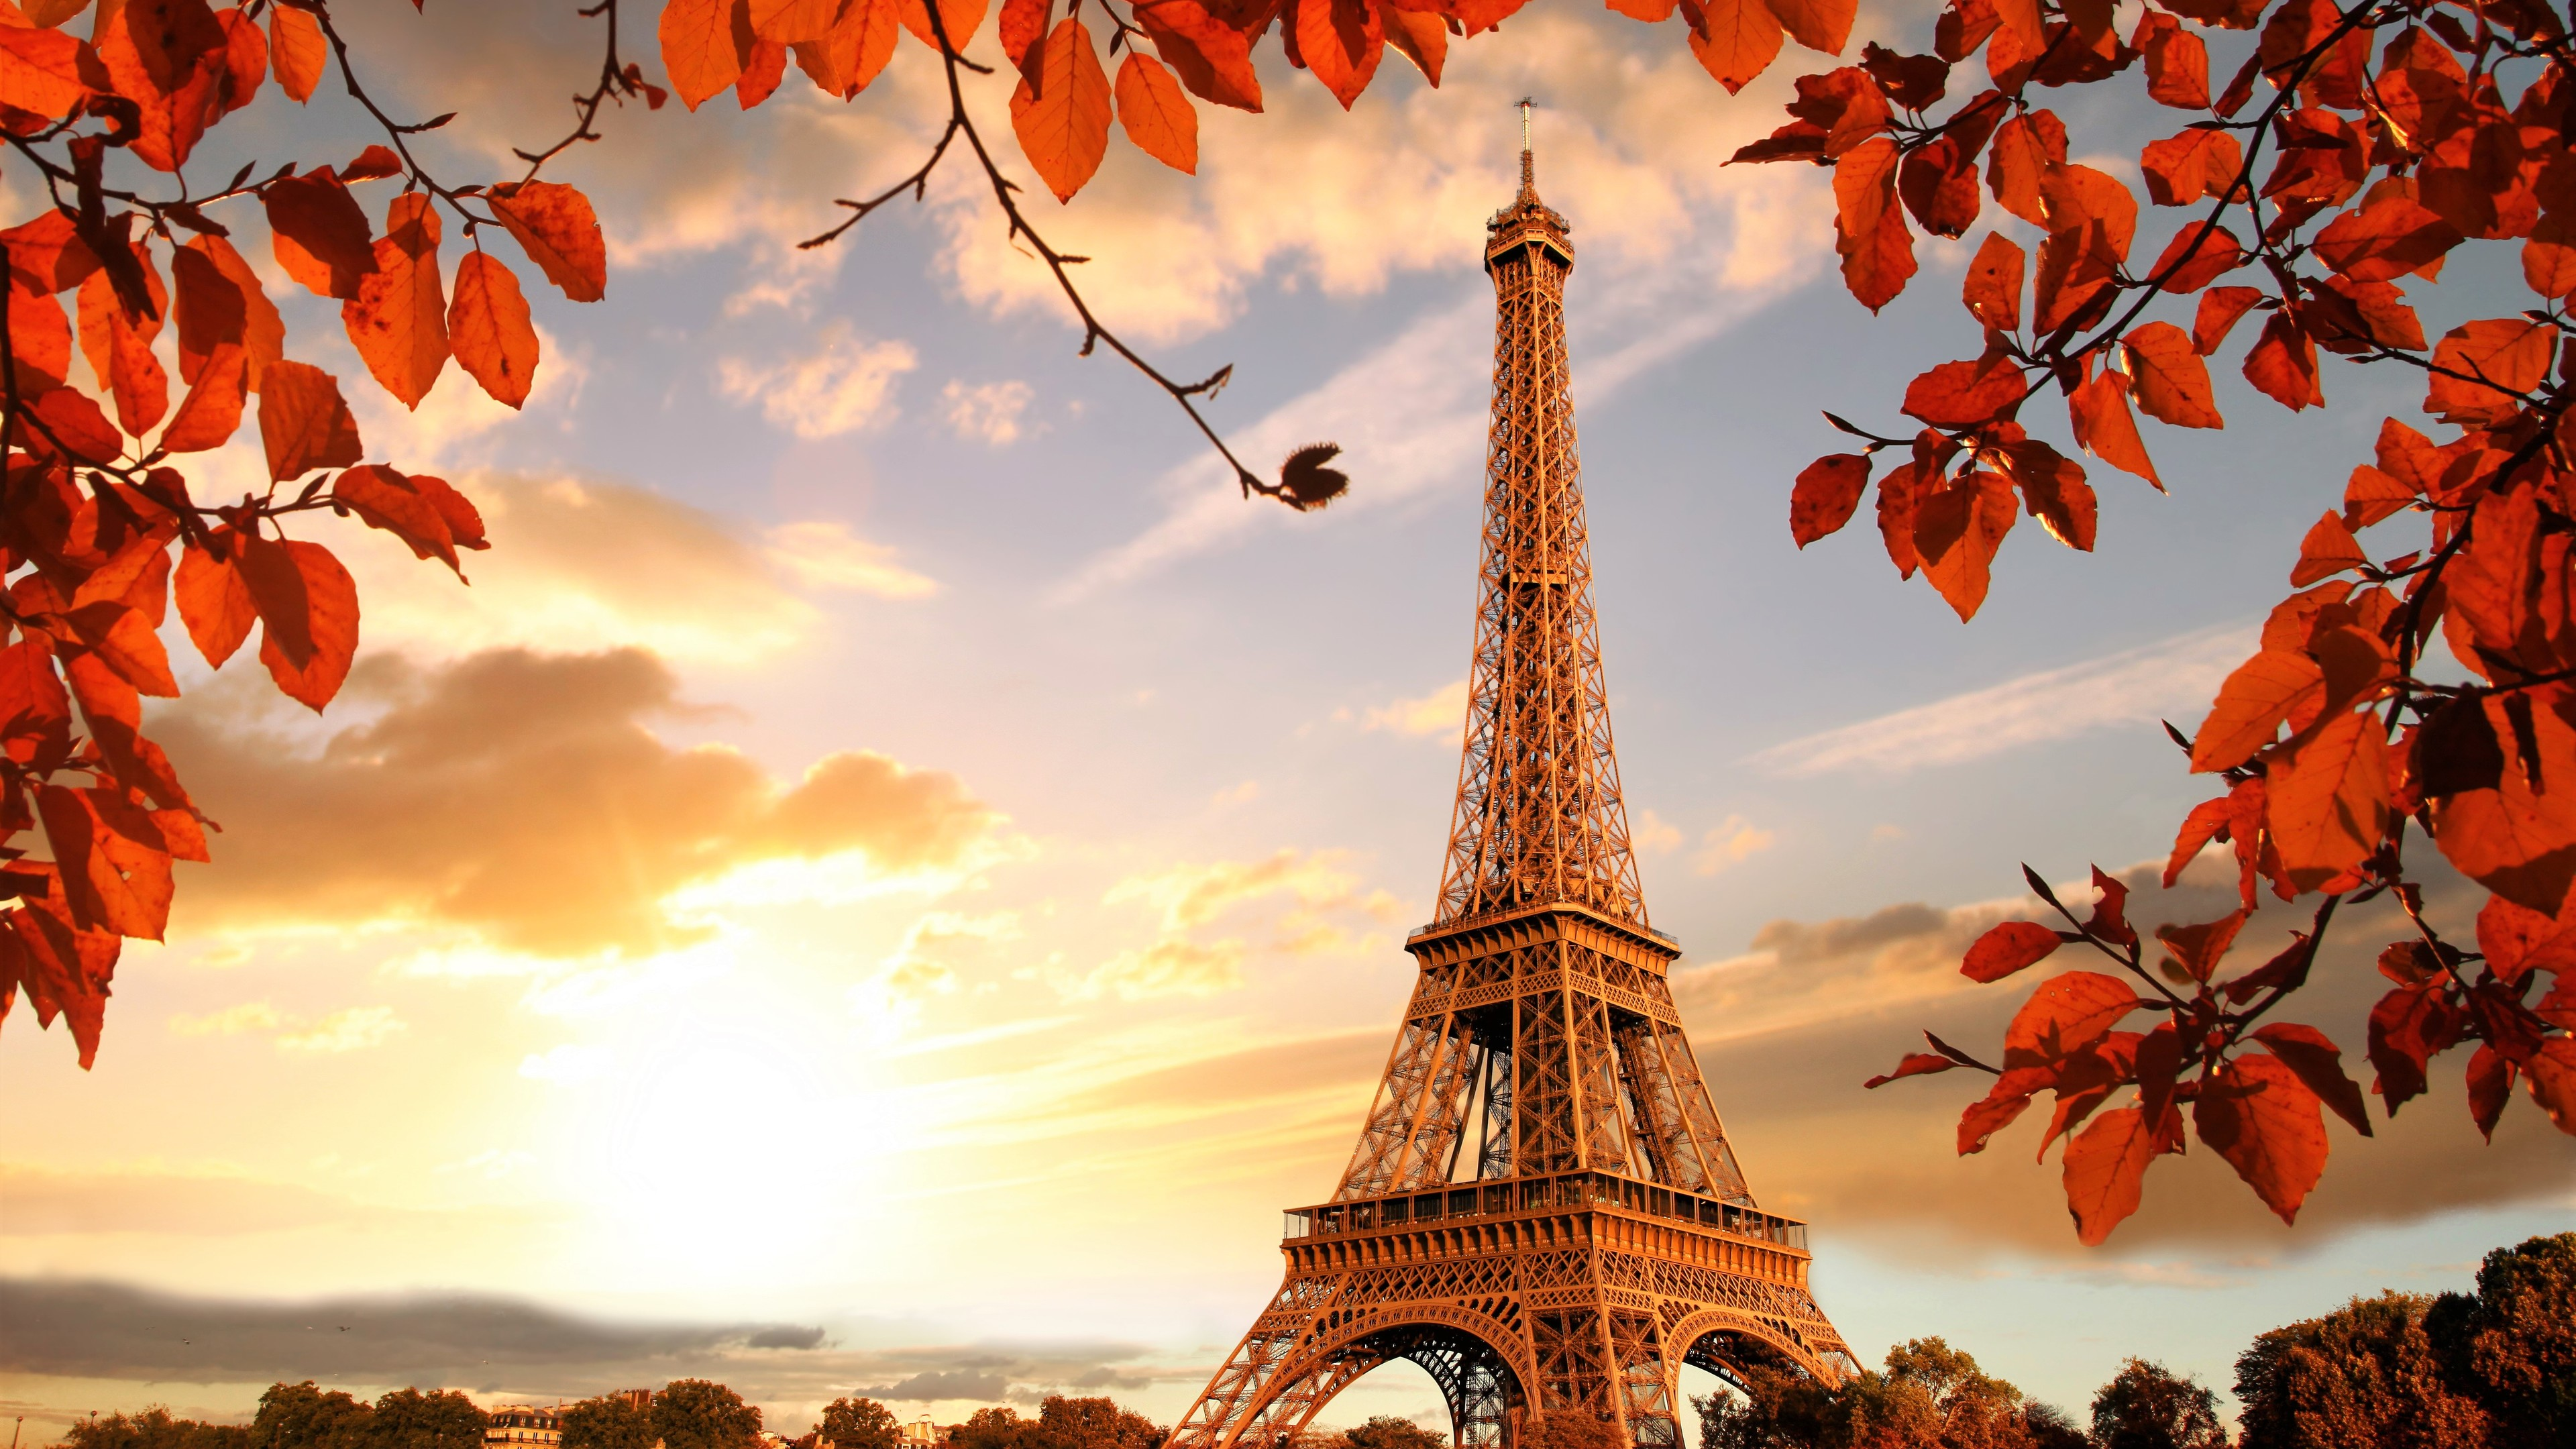 eiffel tower autumn season 4k 5k 1538069328 - Eiffel Tower Autumn Season 4k 5k - world wallpapers, paris wallpapers, hd-wallpapers, france wallpapers, eiffel tower wallpapers, autumn wallpapers, 5k wallpapers, 4k-wallpapers